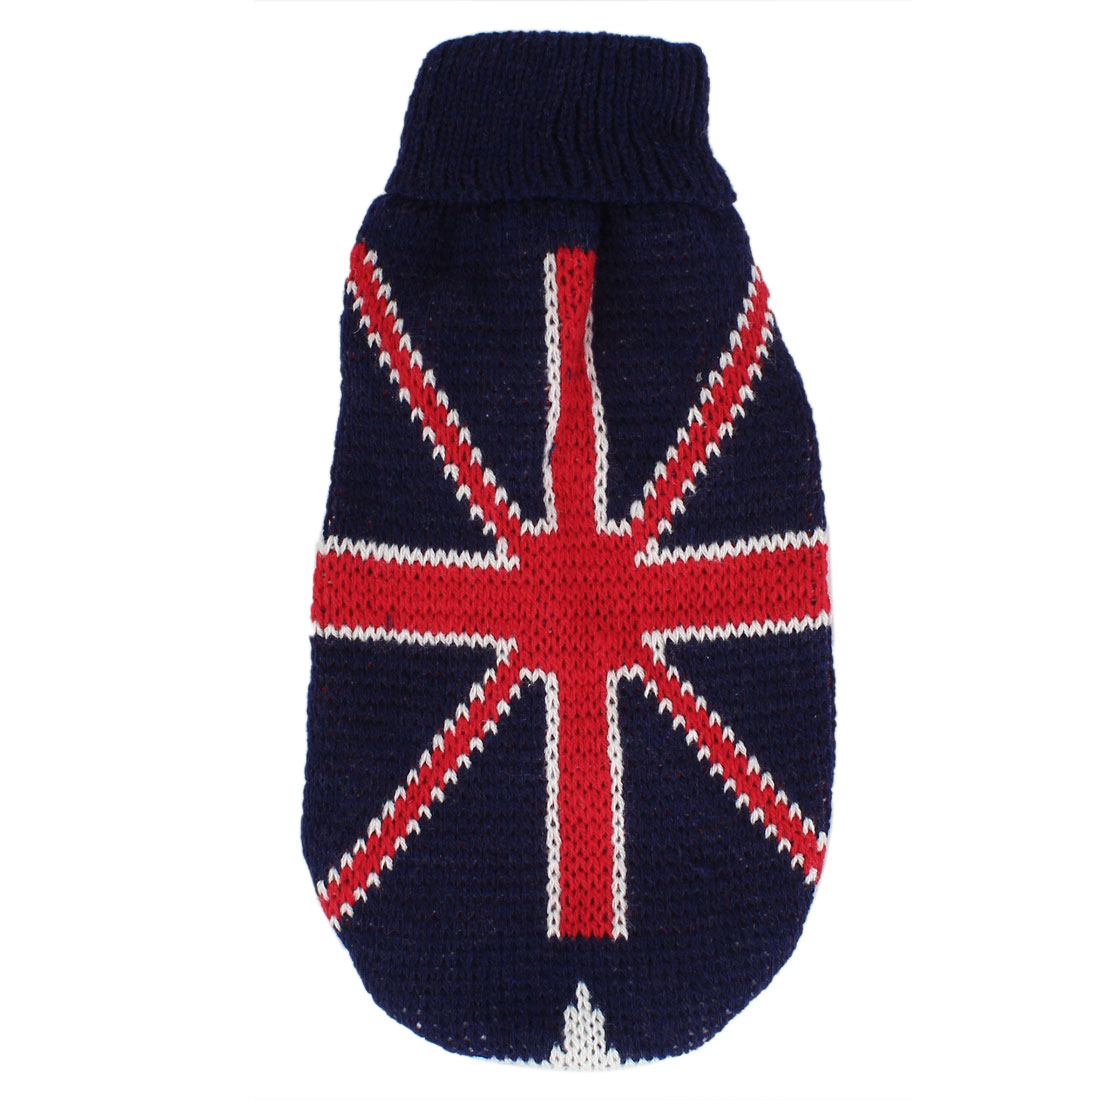 Pet Dog Poodle Flag Pattern Dark Blue Red White Ribbed Cuff Knitwear Turtleneck Apparel Sweater XXS